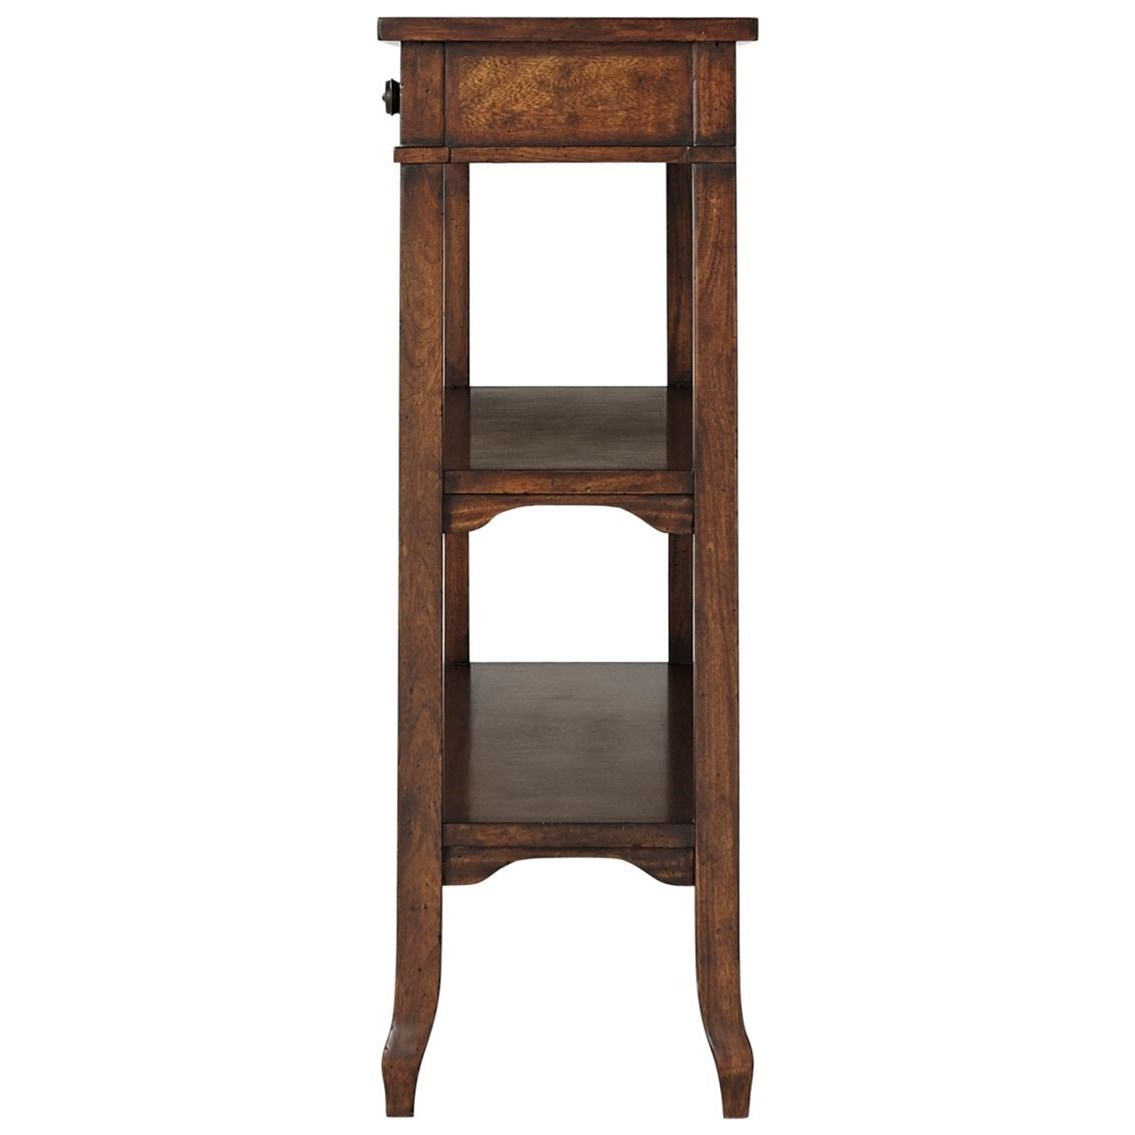 Theodore Alexander Brooksby 5305 269 Luberon Console